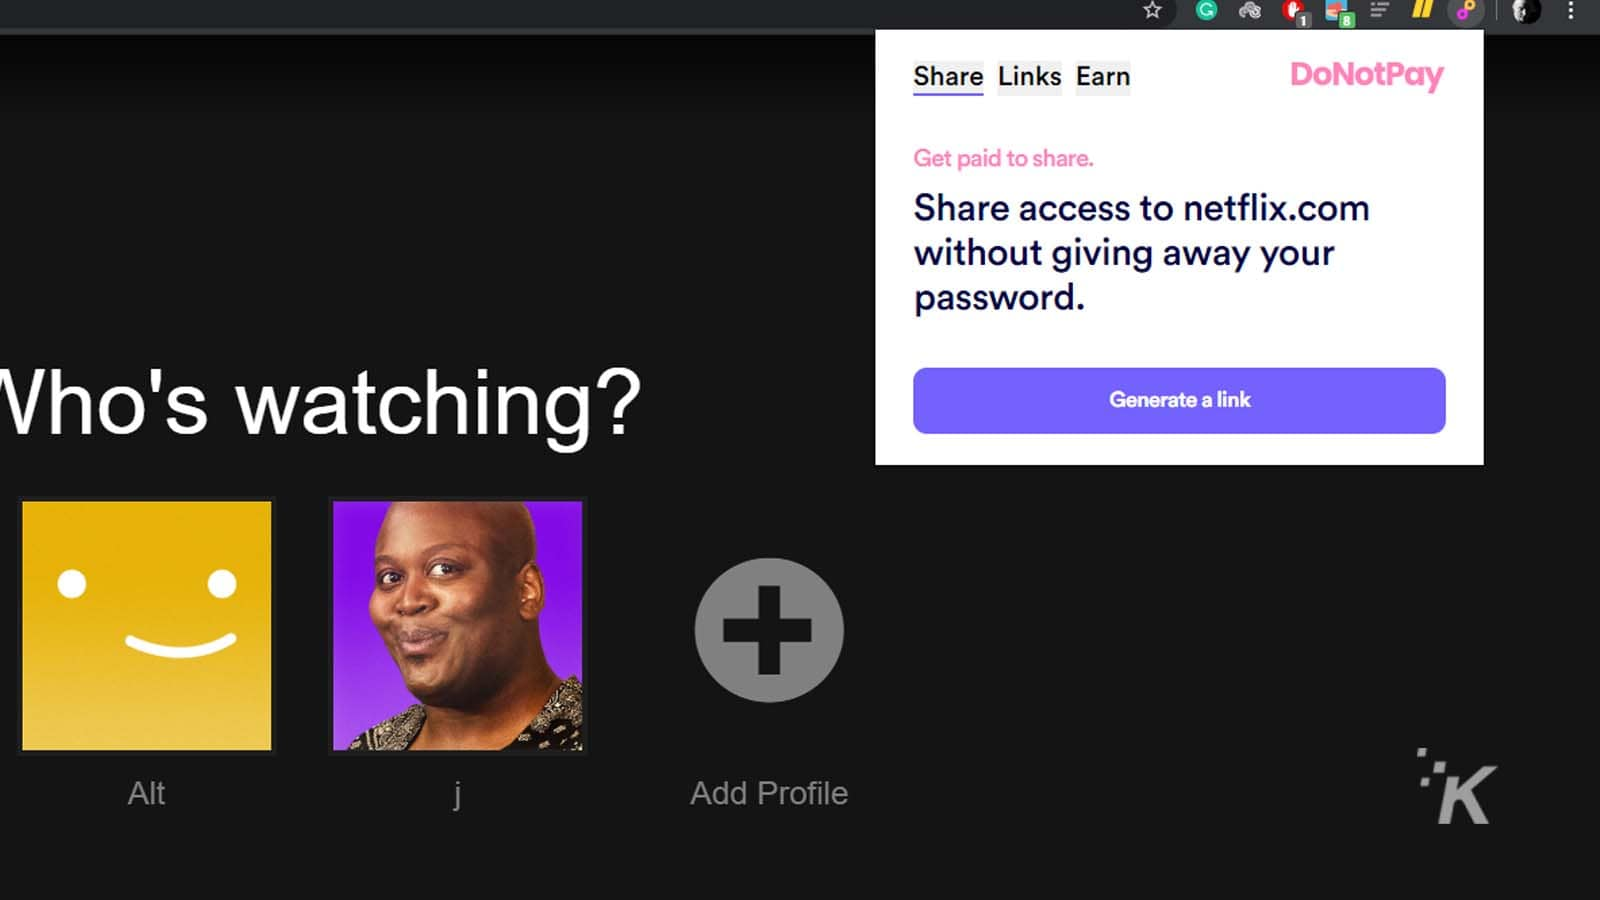 donotpay for netflix